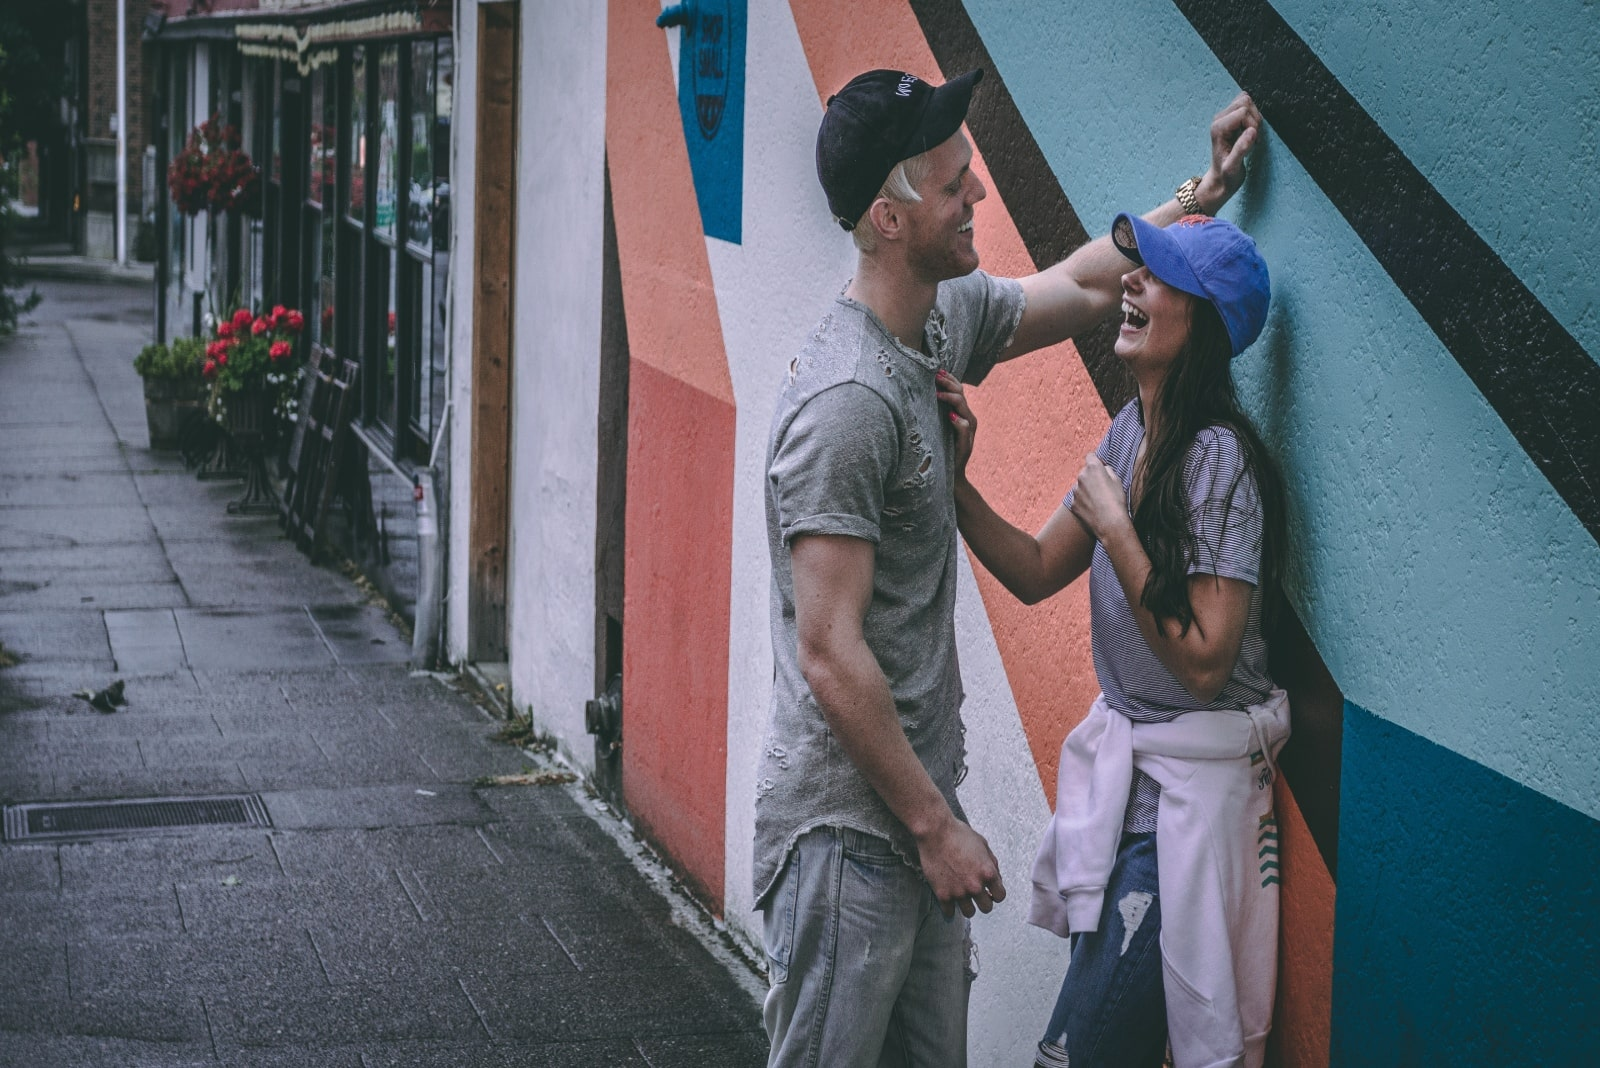 man and woman making eye contact while standing near wall